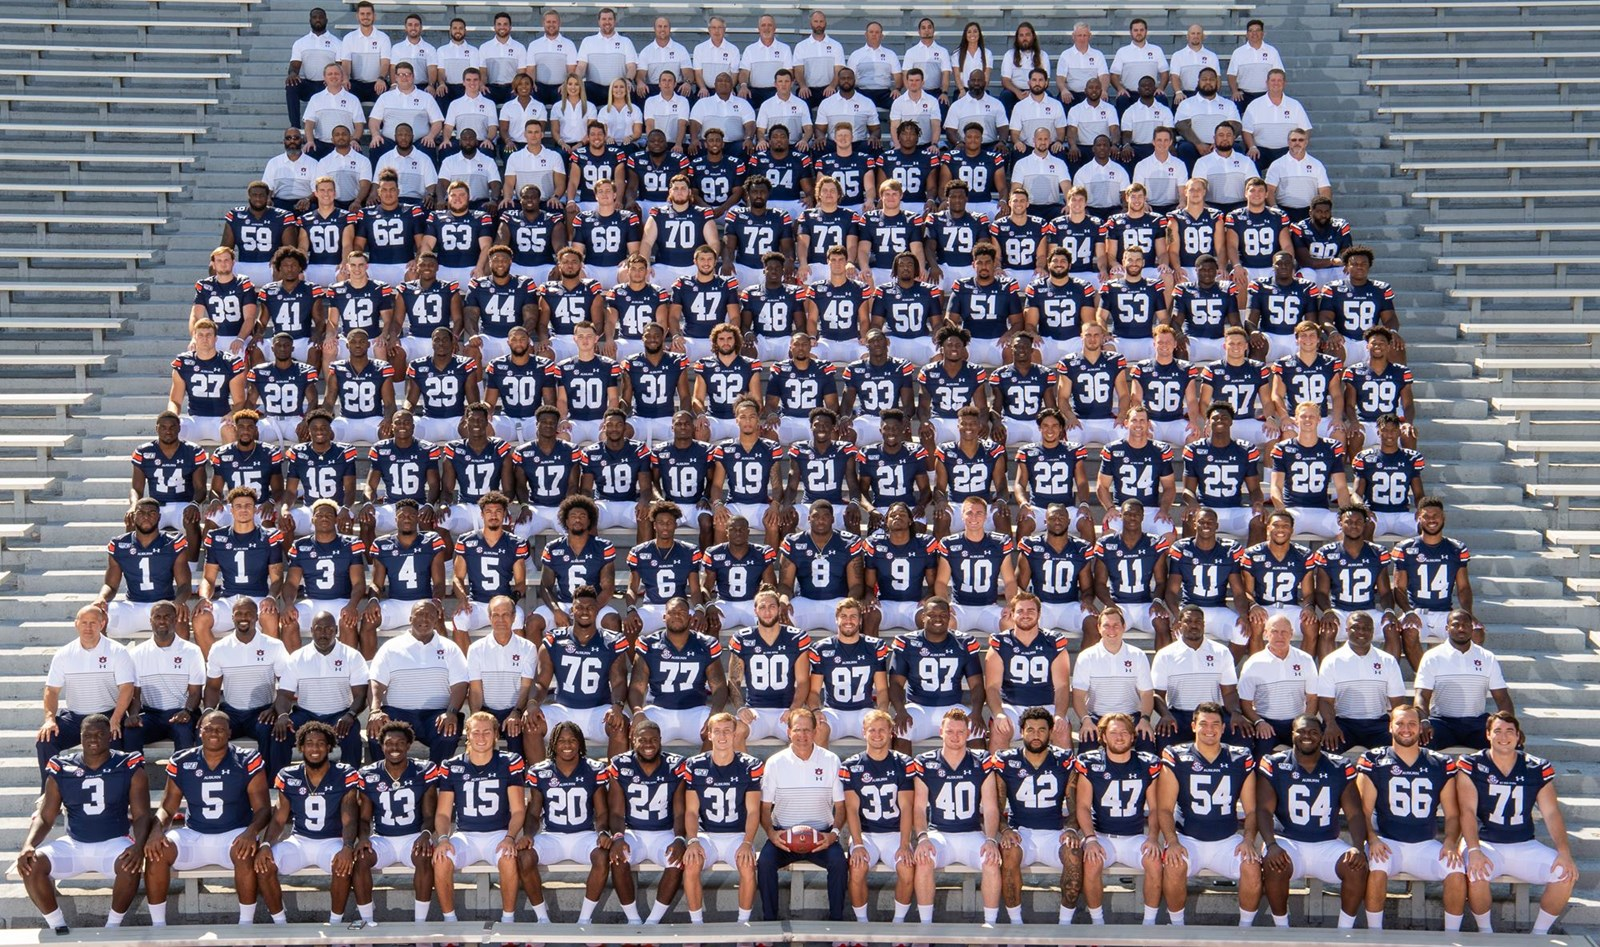 2019 Football Roster Auburn University Athletics